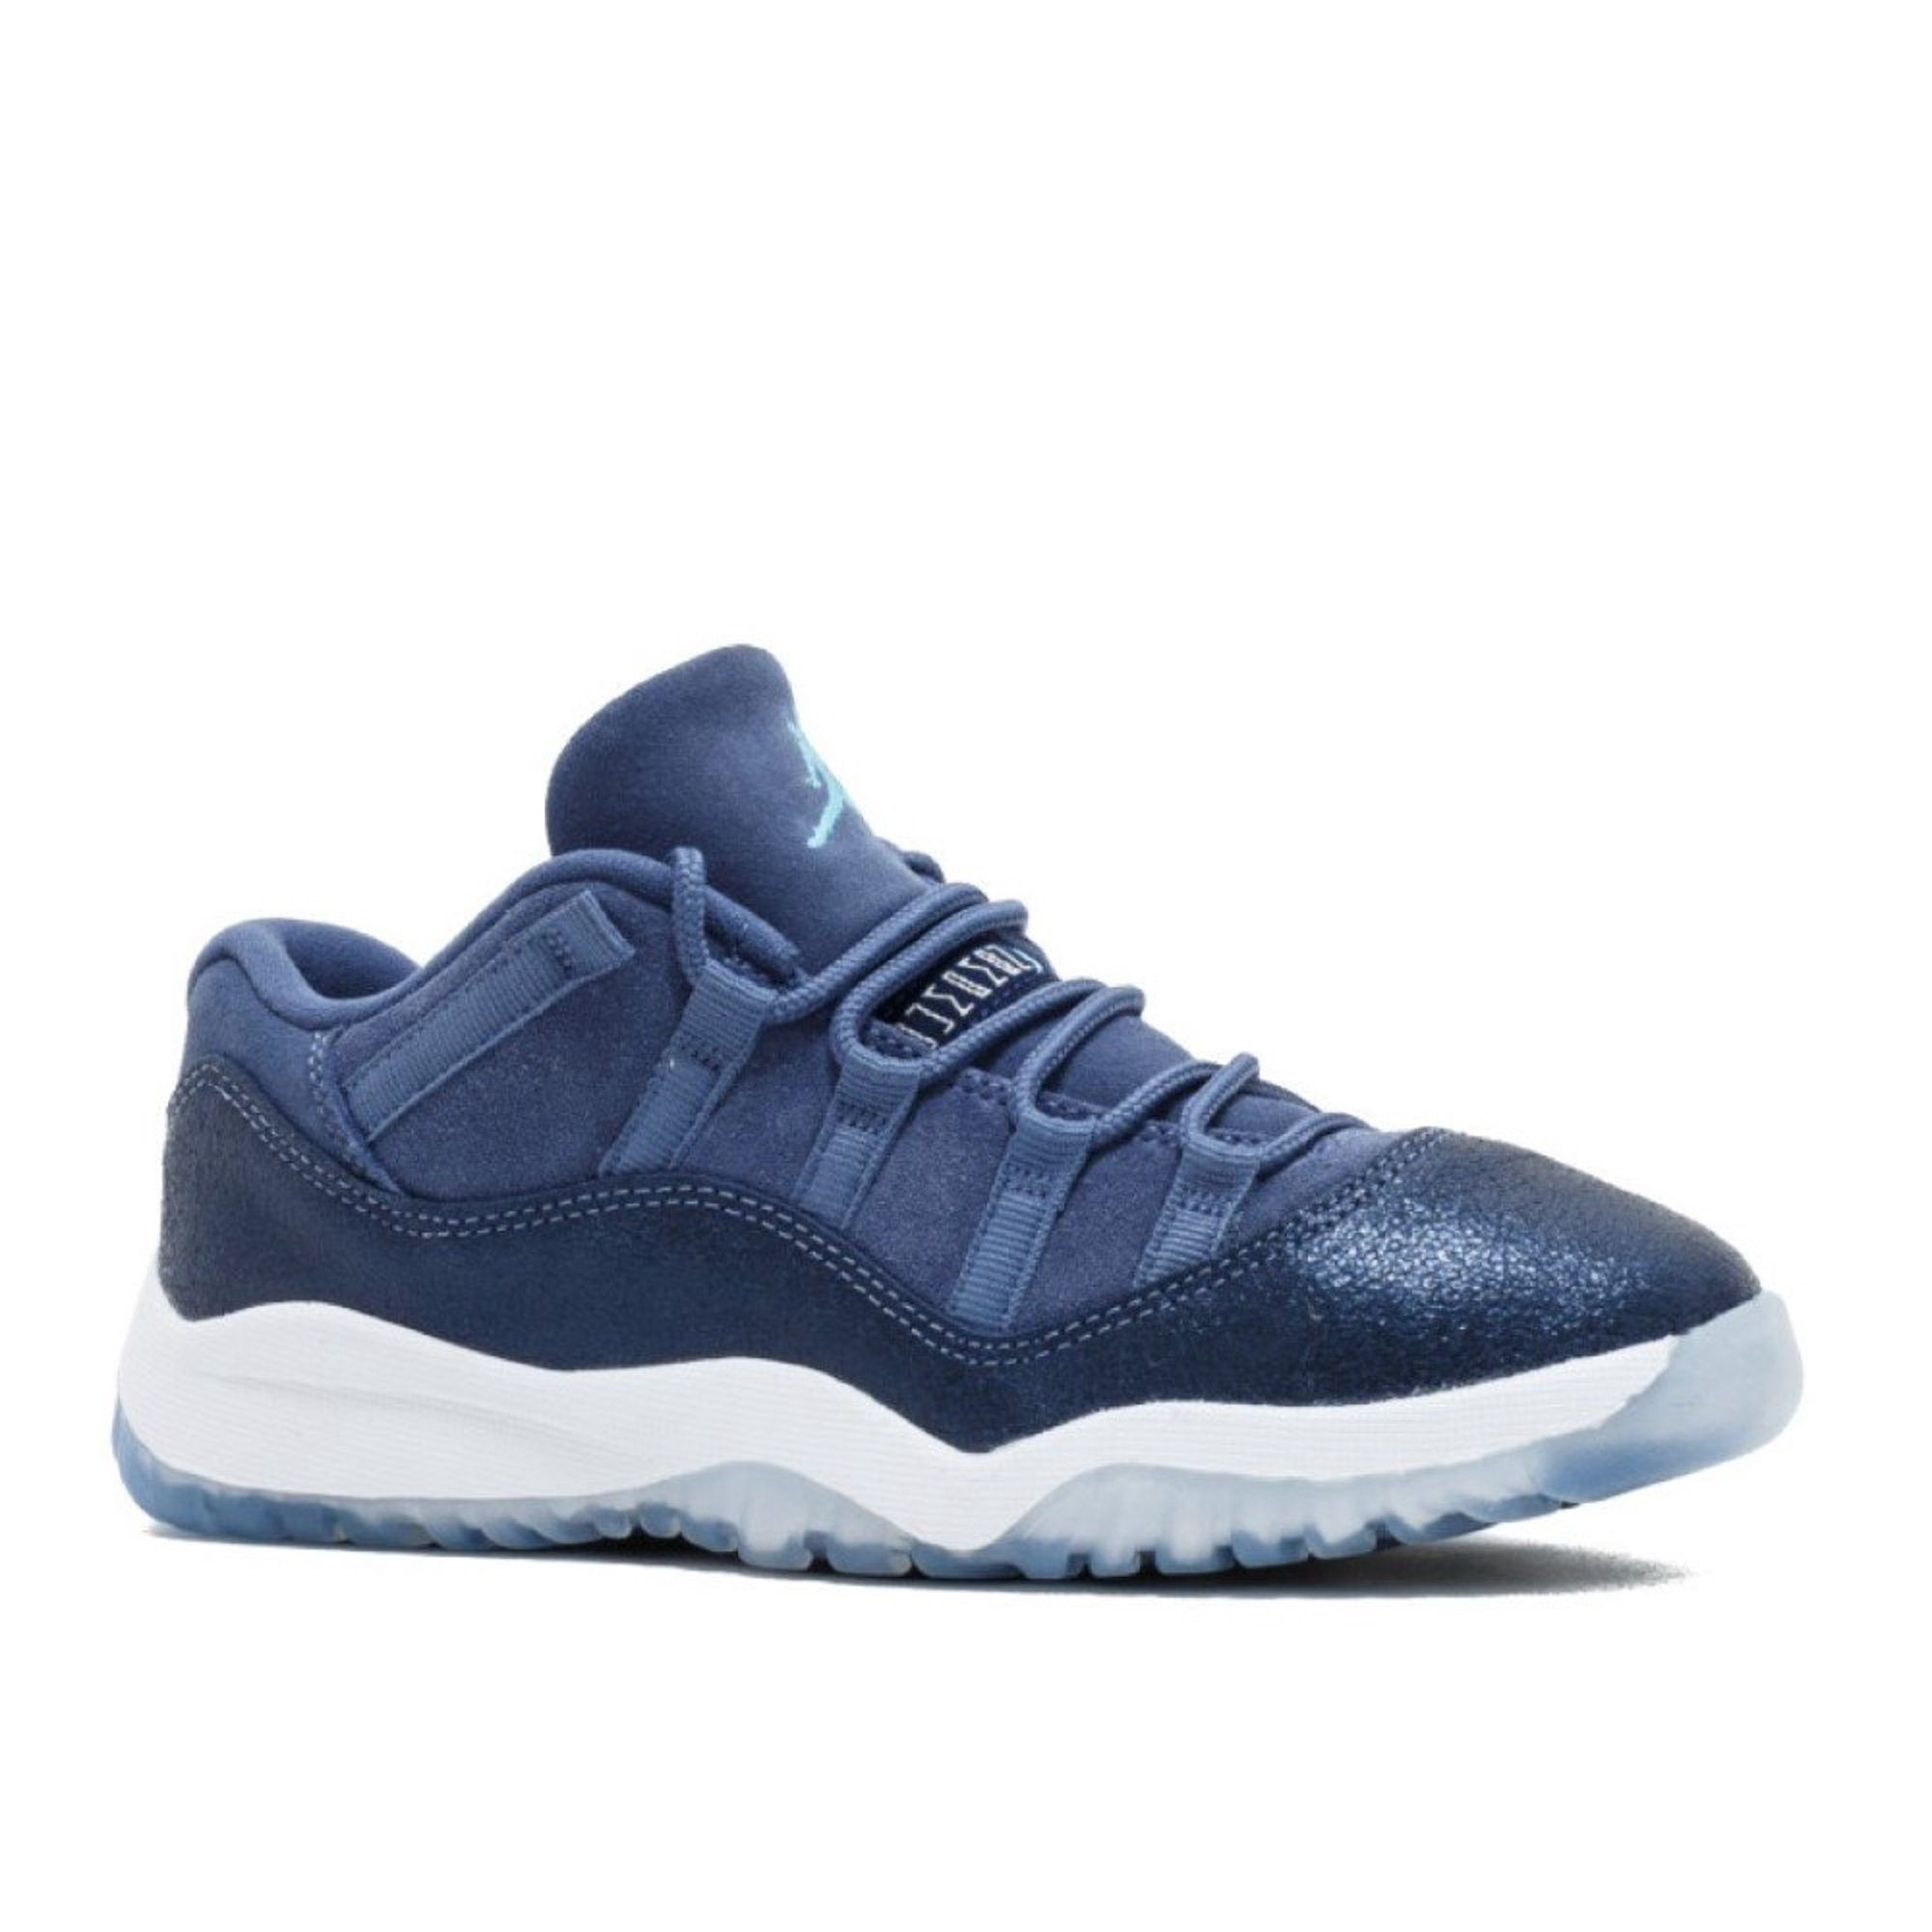 wholesale dealer 91338 23f0d Air Jordan - Unisex - Jordan 11 Retro Low Gp (Td)  Blue  - 580522-408 -  Size 1   Walmart Canada